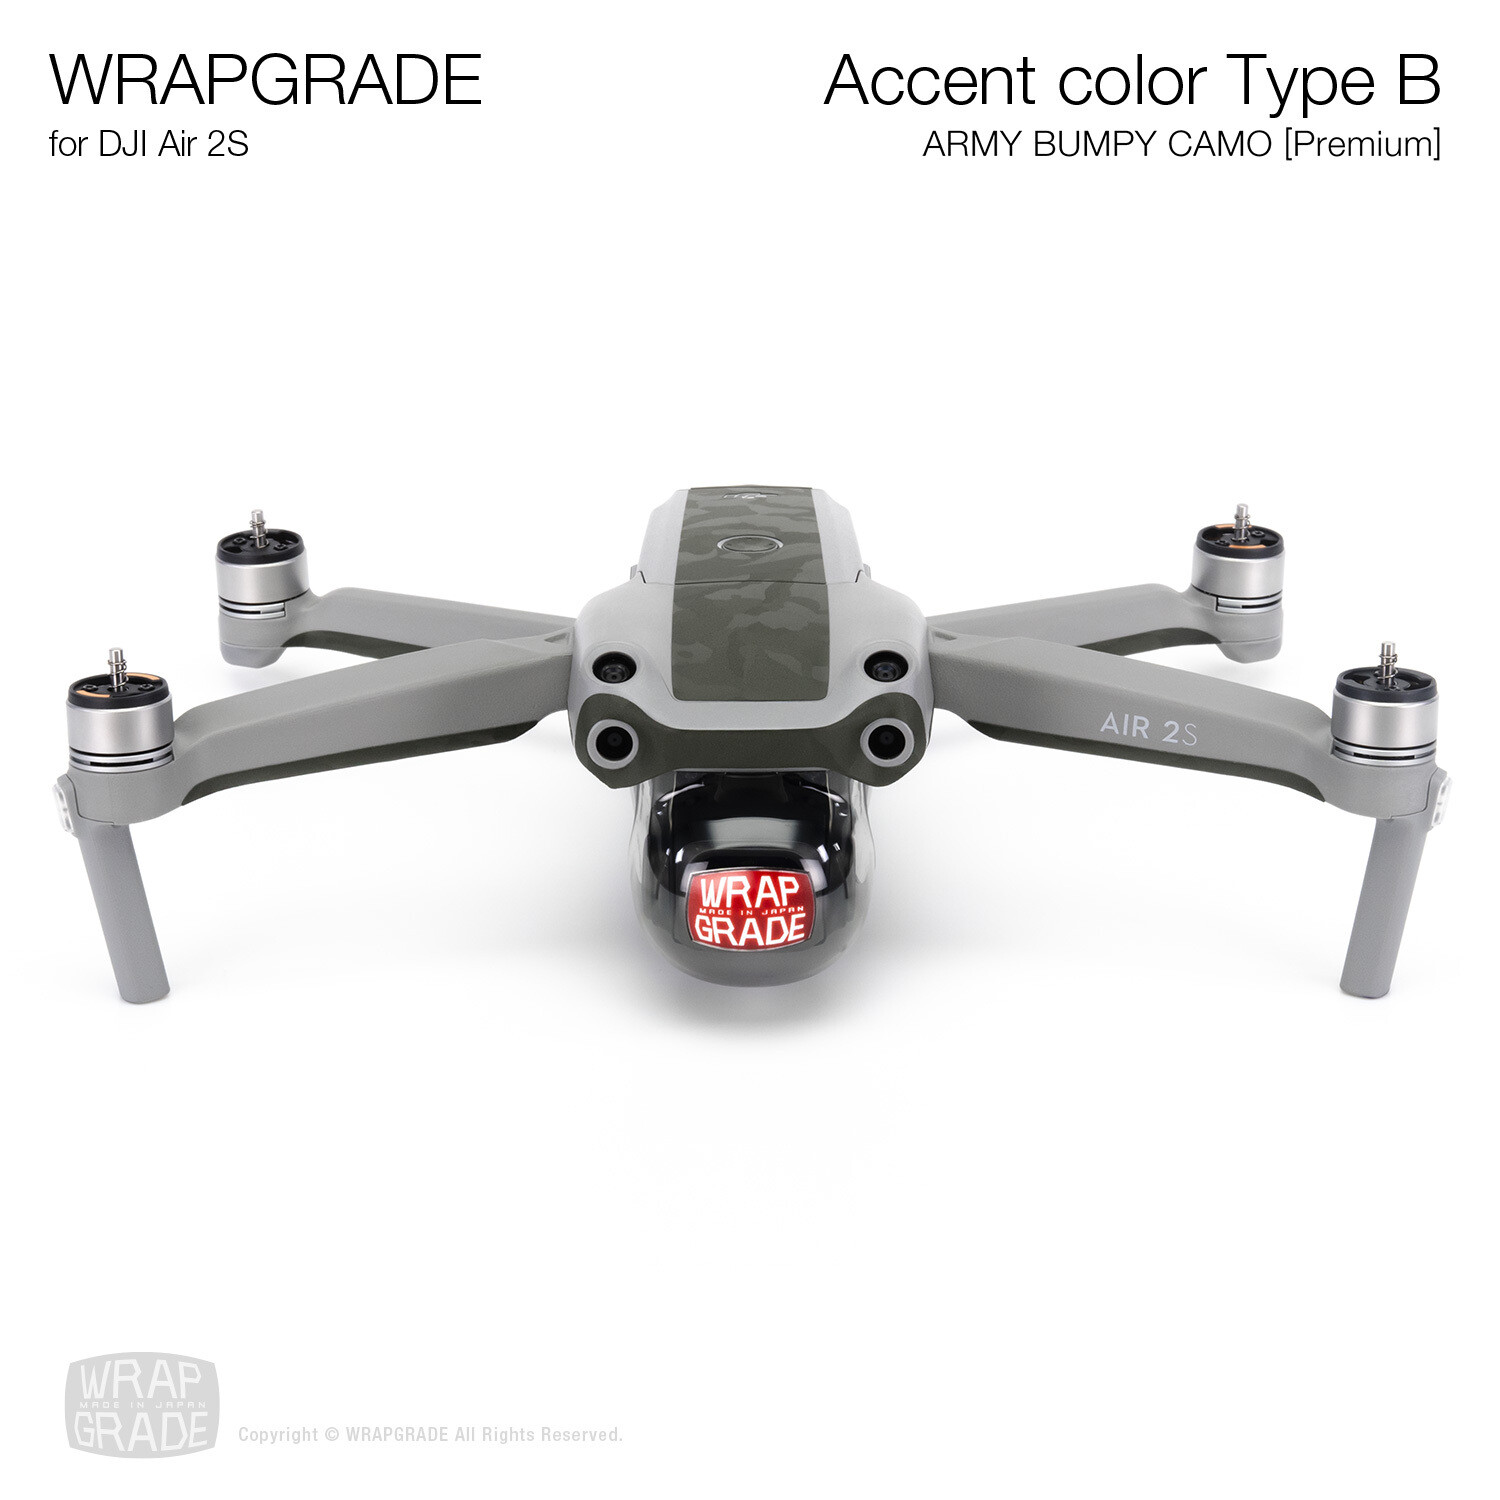 Wrapgrade Skin for DJI Air 2S | Accent Color B (ARMY BUMPY CAMO)